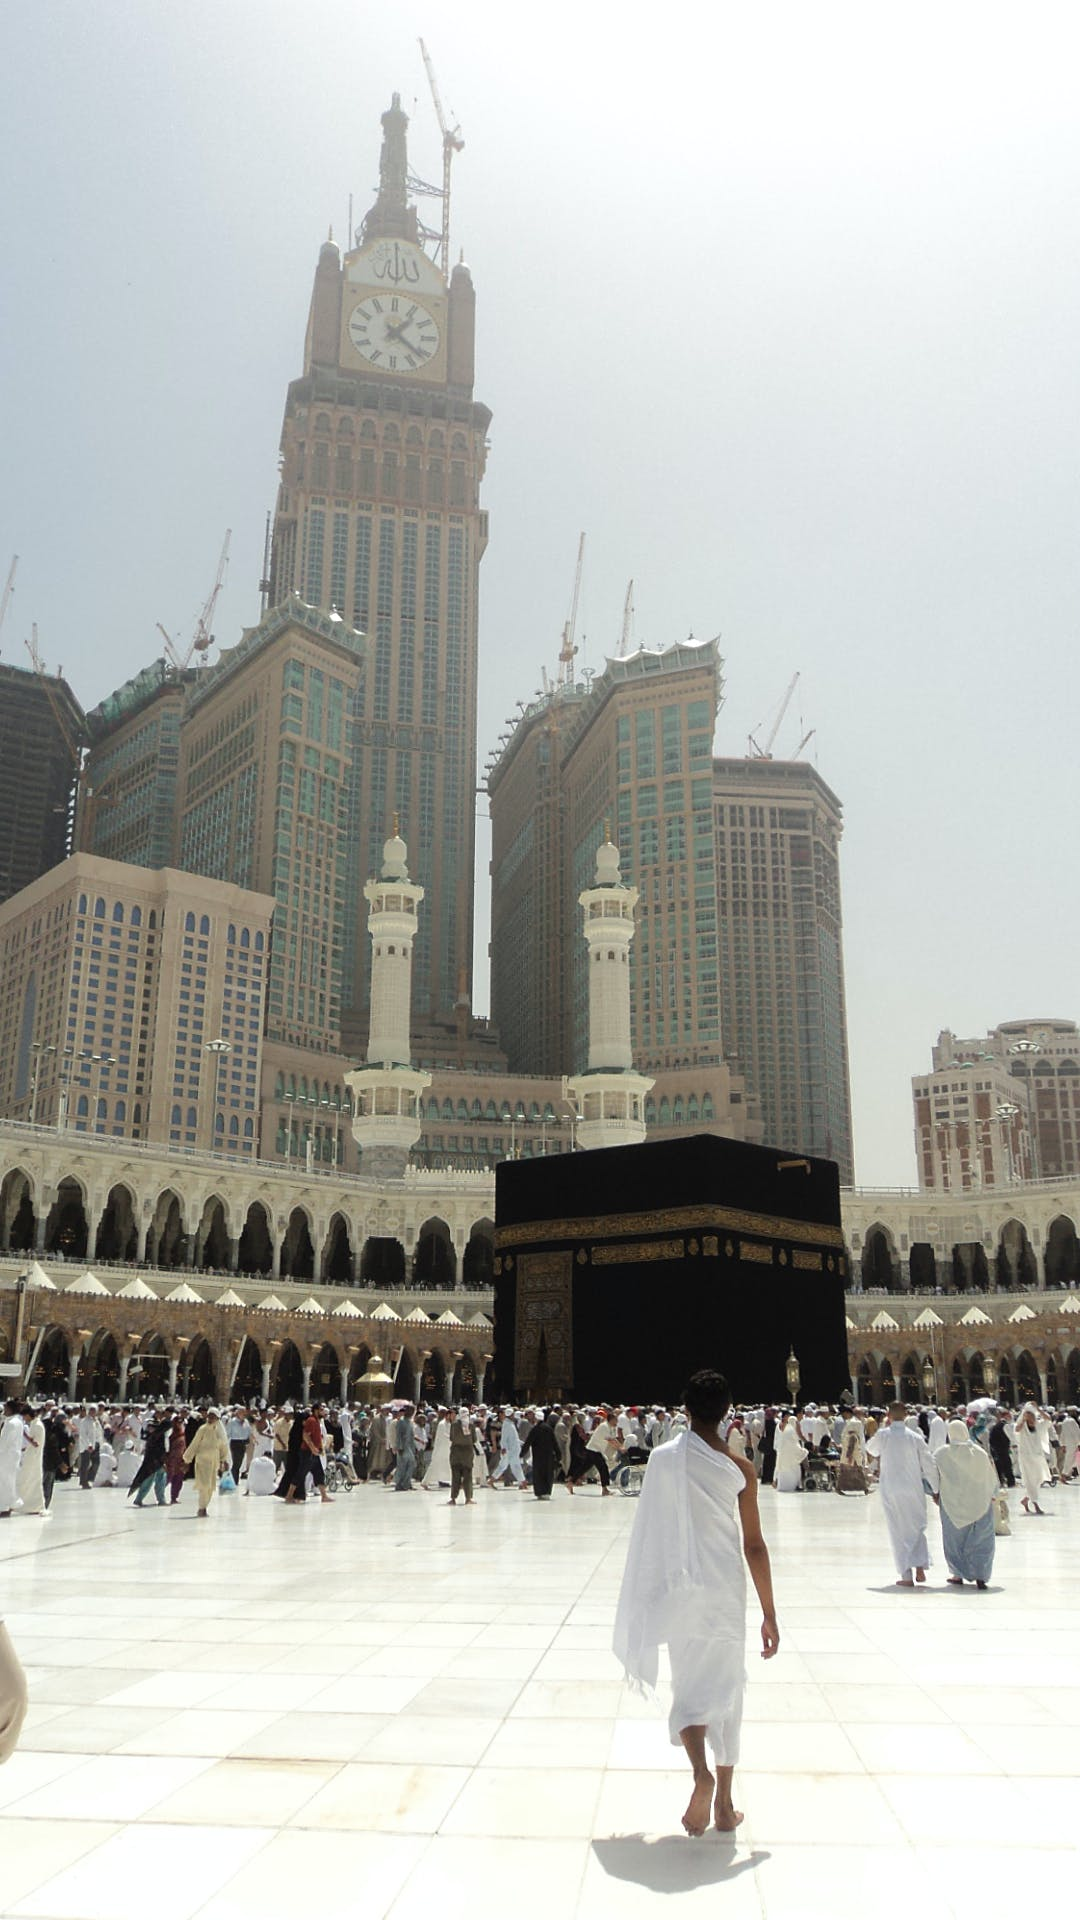 Saudi Arabia's uneasy relationship with its cultural heritage of